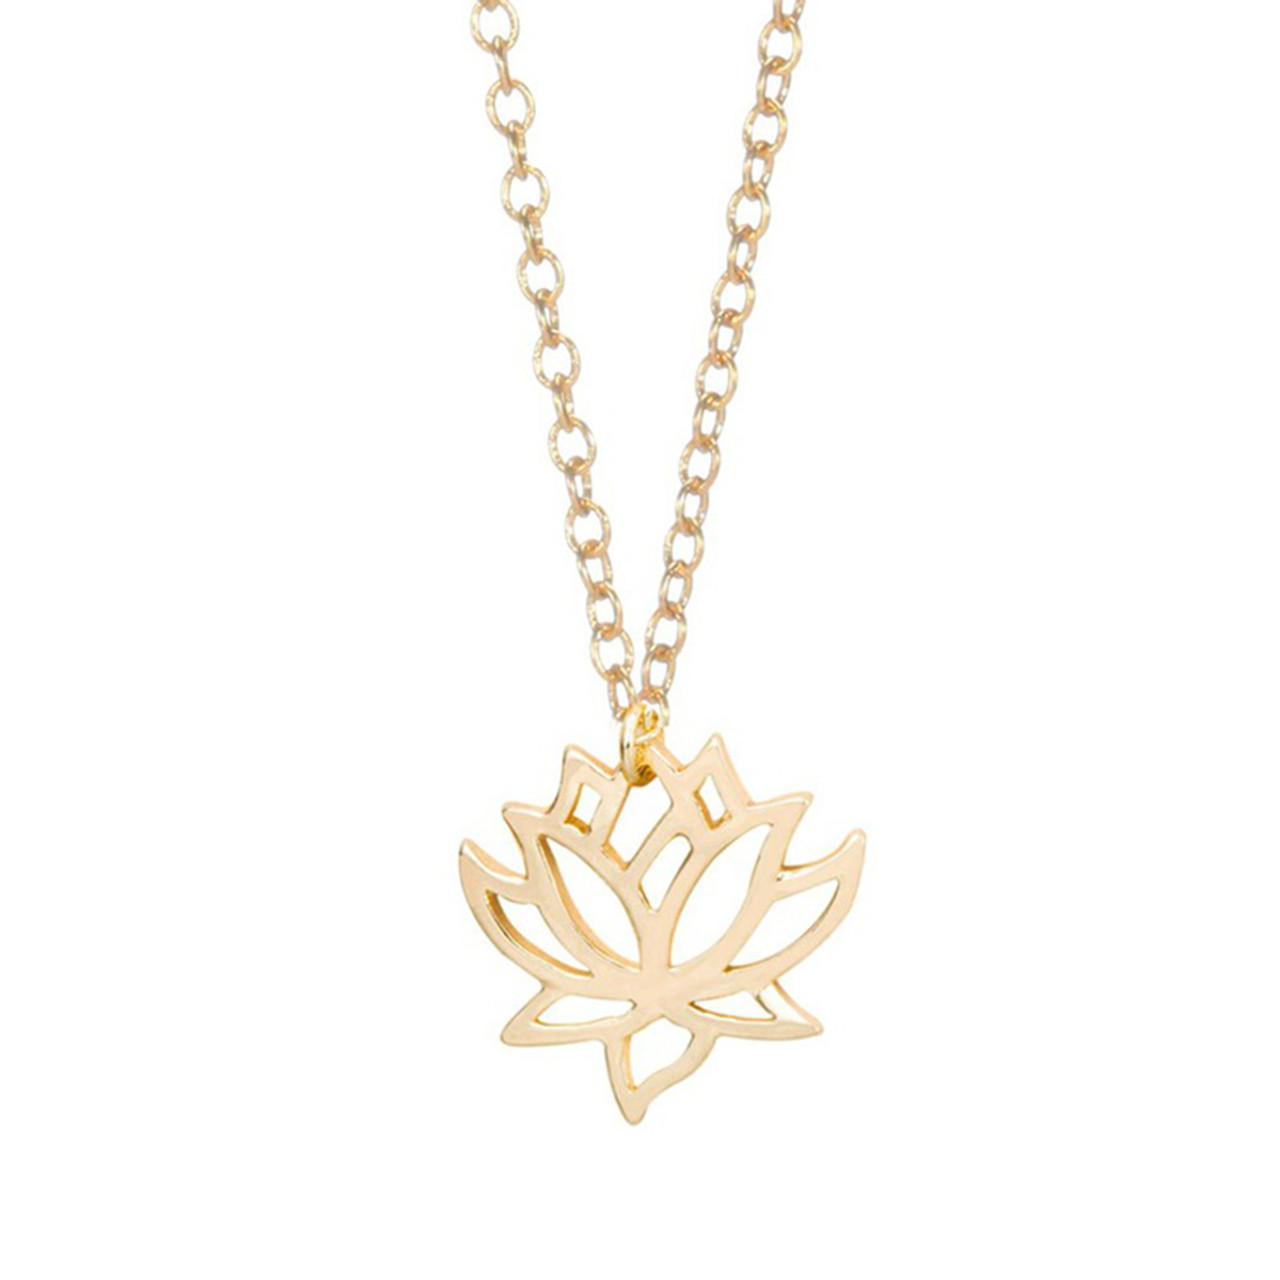 5b42b9011e419f Gold Plated Lotus Flower Necklace. Home · Necklaces · Gold Plated Lotus  Flower Necklace ·  UrbanSHe_gold_plated_lotus_flower_necklace_fashion_jewellery